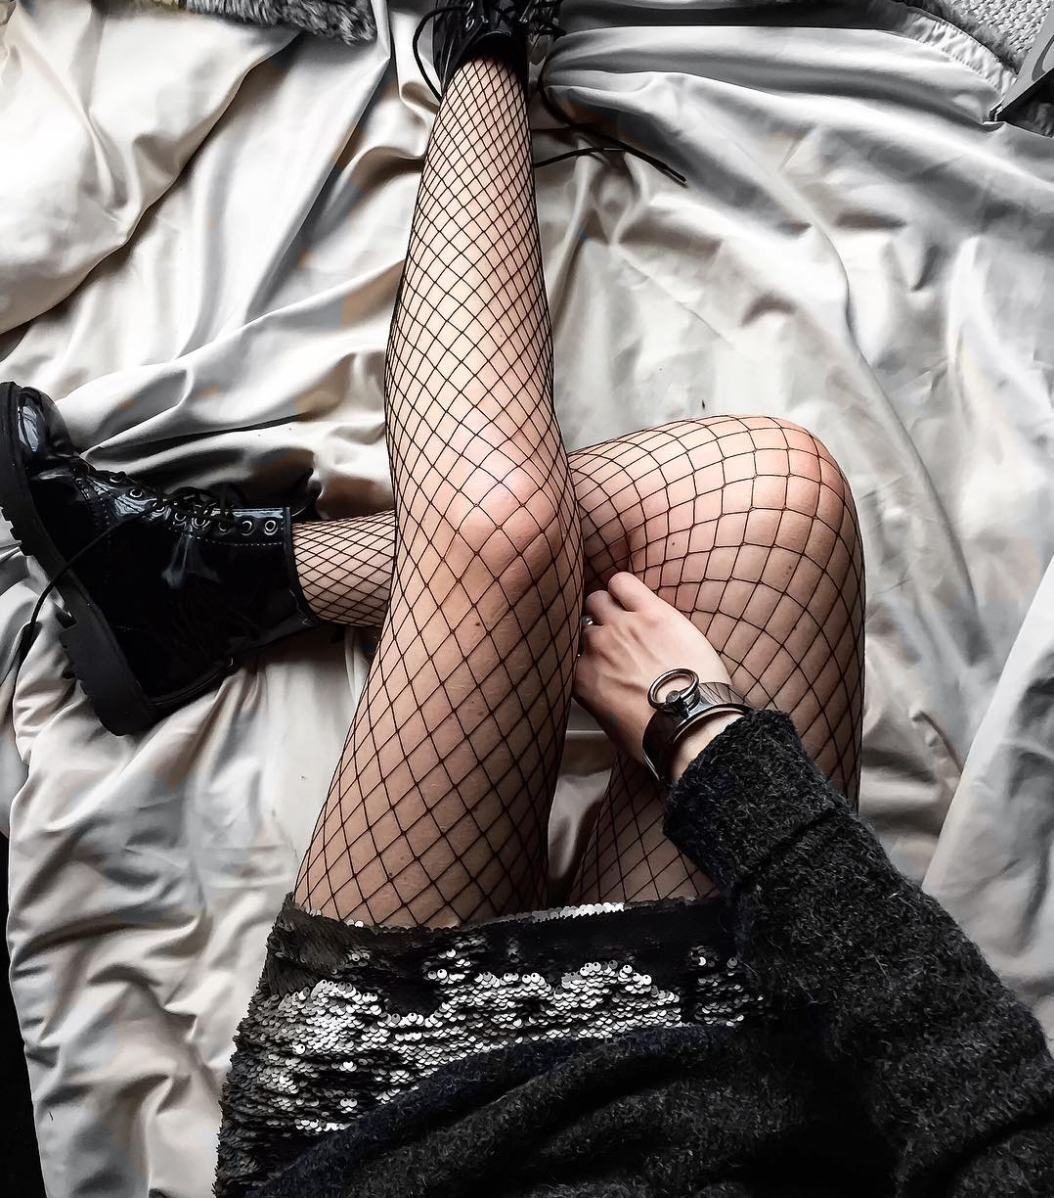 Sequins and fishnets were meant to be. By the way, Fishnets Are Back: Here are 18 Chic Ways to Wear Them. | glitterinc.com | @glitterinc